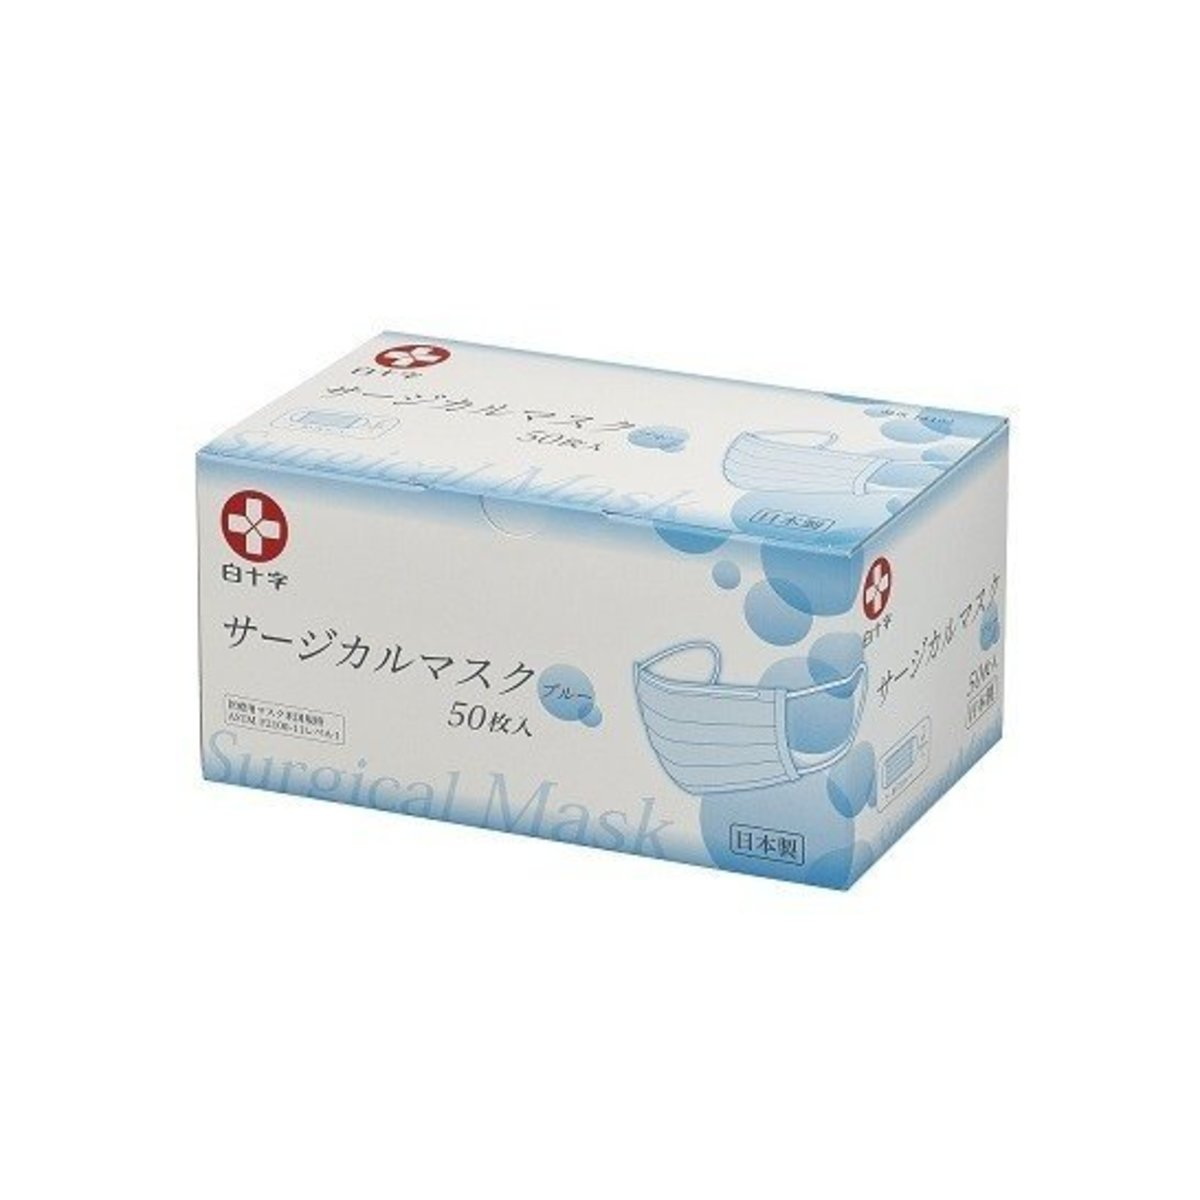 made in japan surgical mask